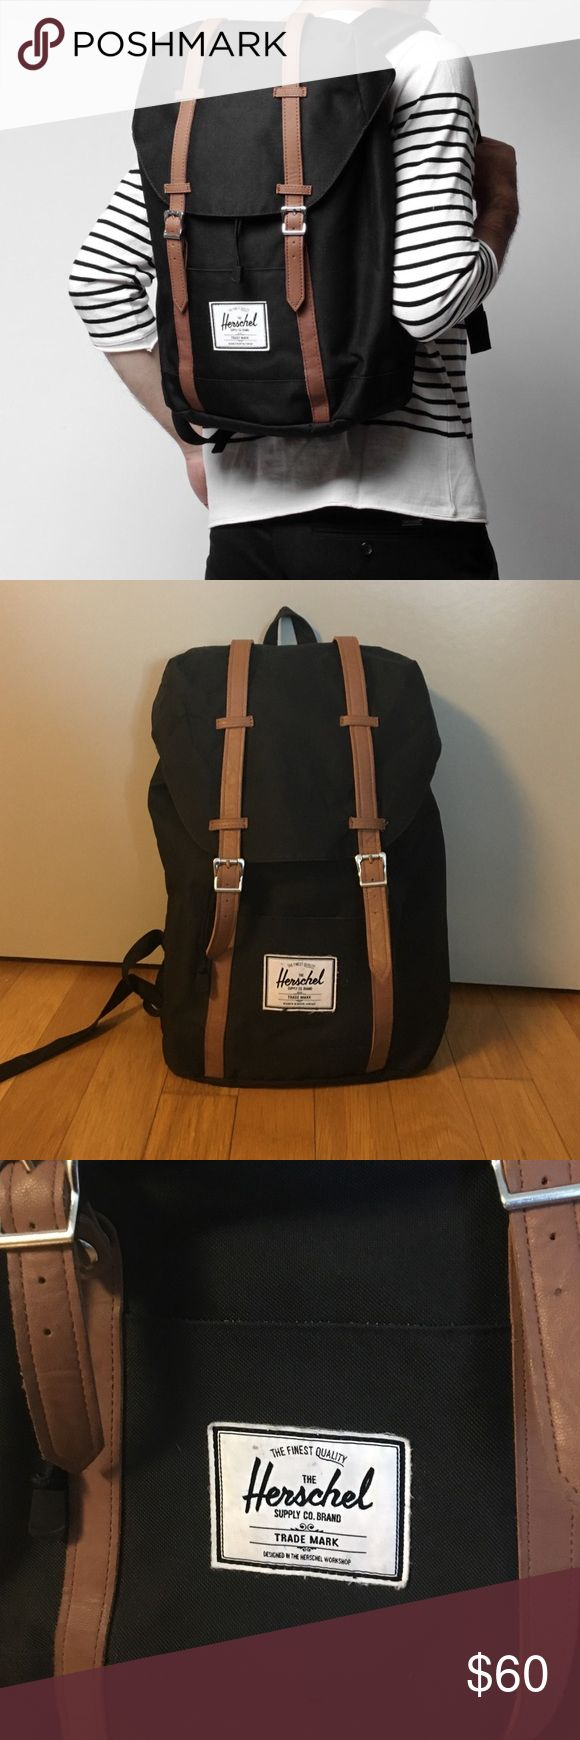 Hershel Retreat Backpack Black backpack with brown leather straps. Used a few times but in great condition. Very roomy interior with laptop slot. Hershel Bags Backpacks